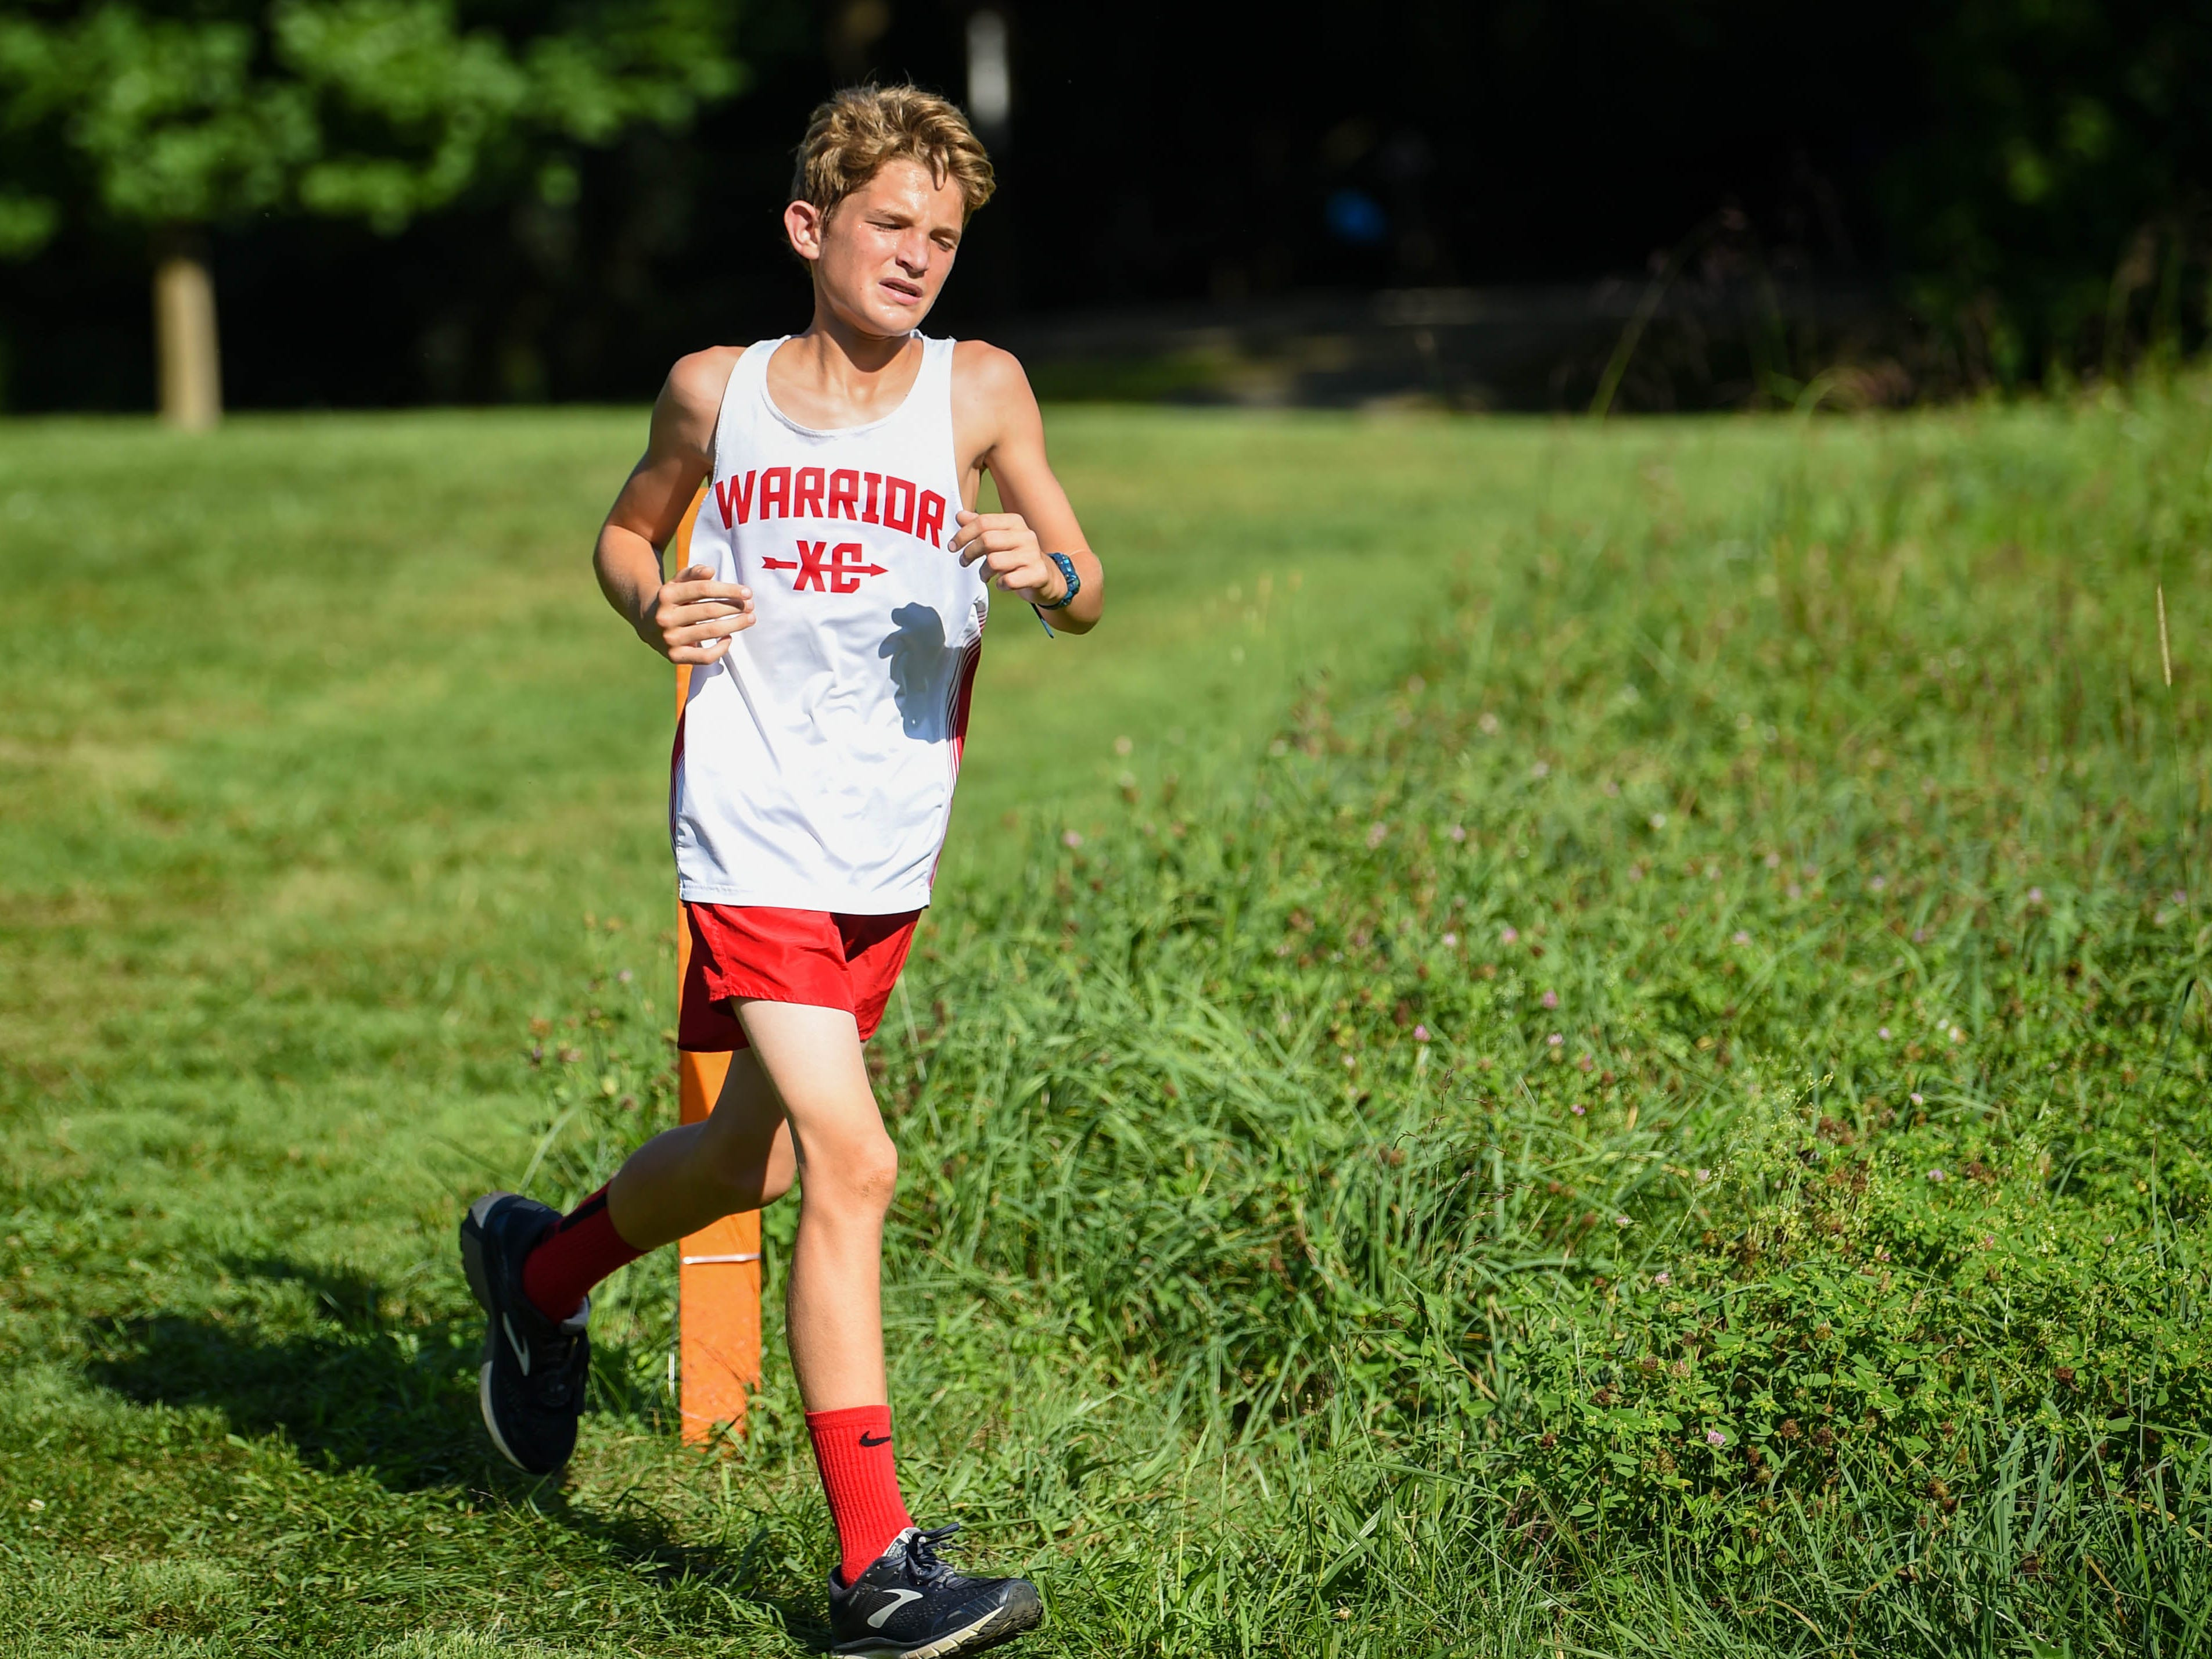 Susquehannock stays strong as he passes the marker at John Rudy County Park on August 30, 2018.